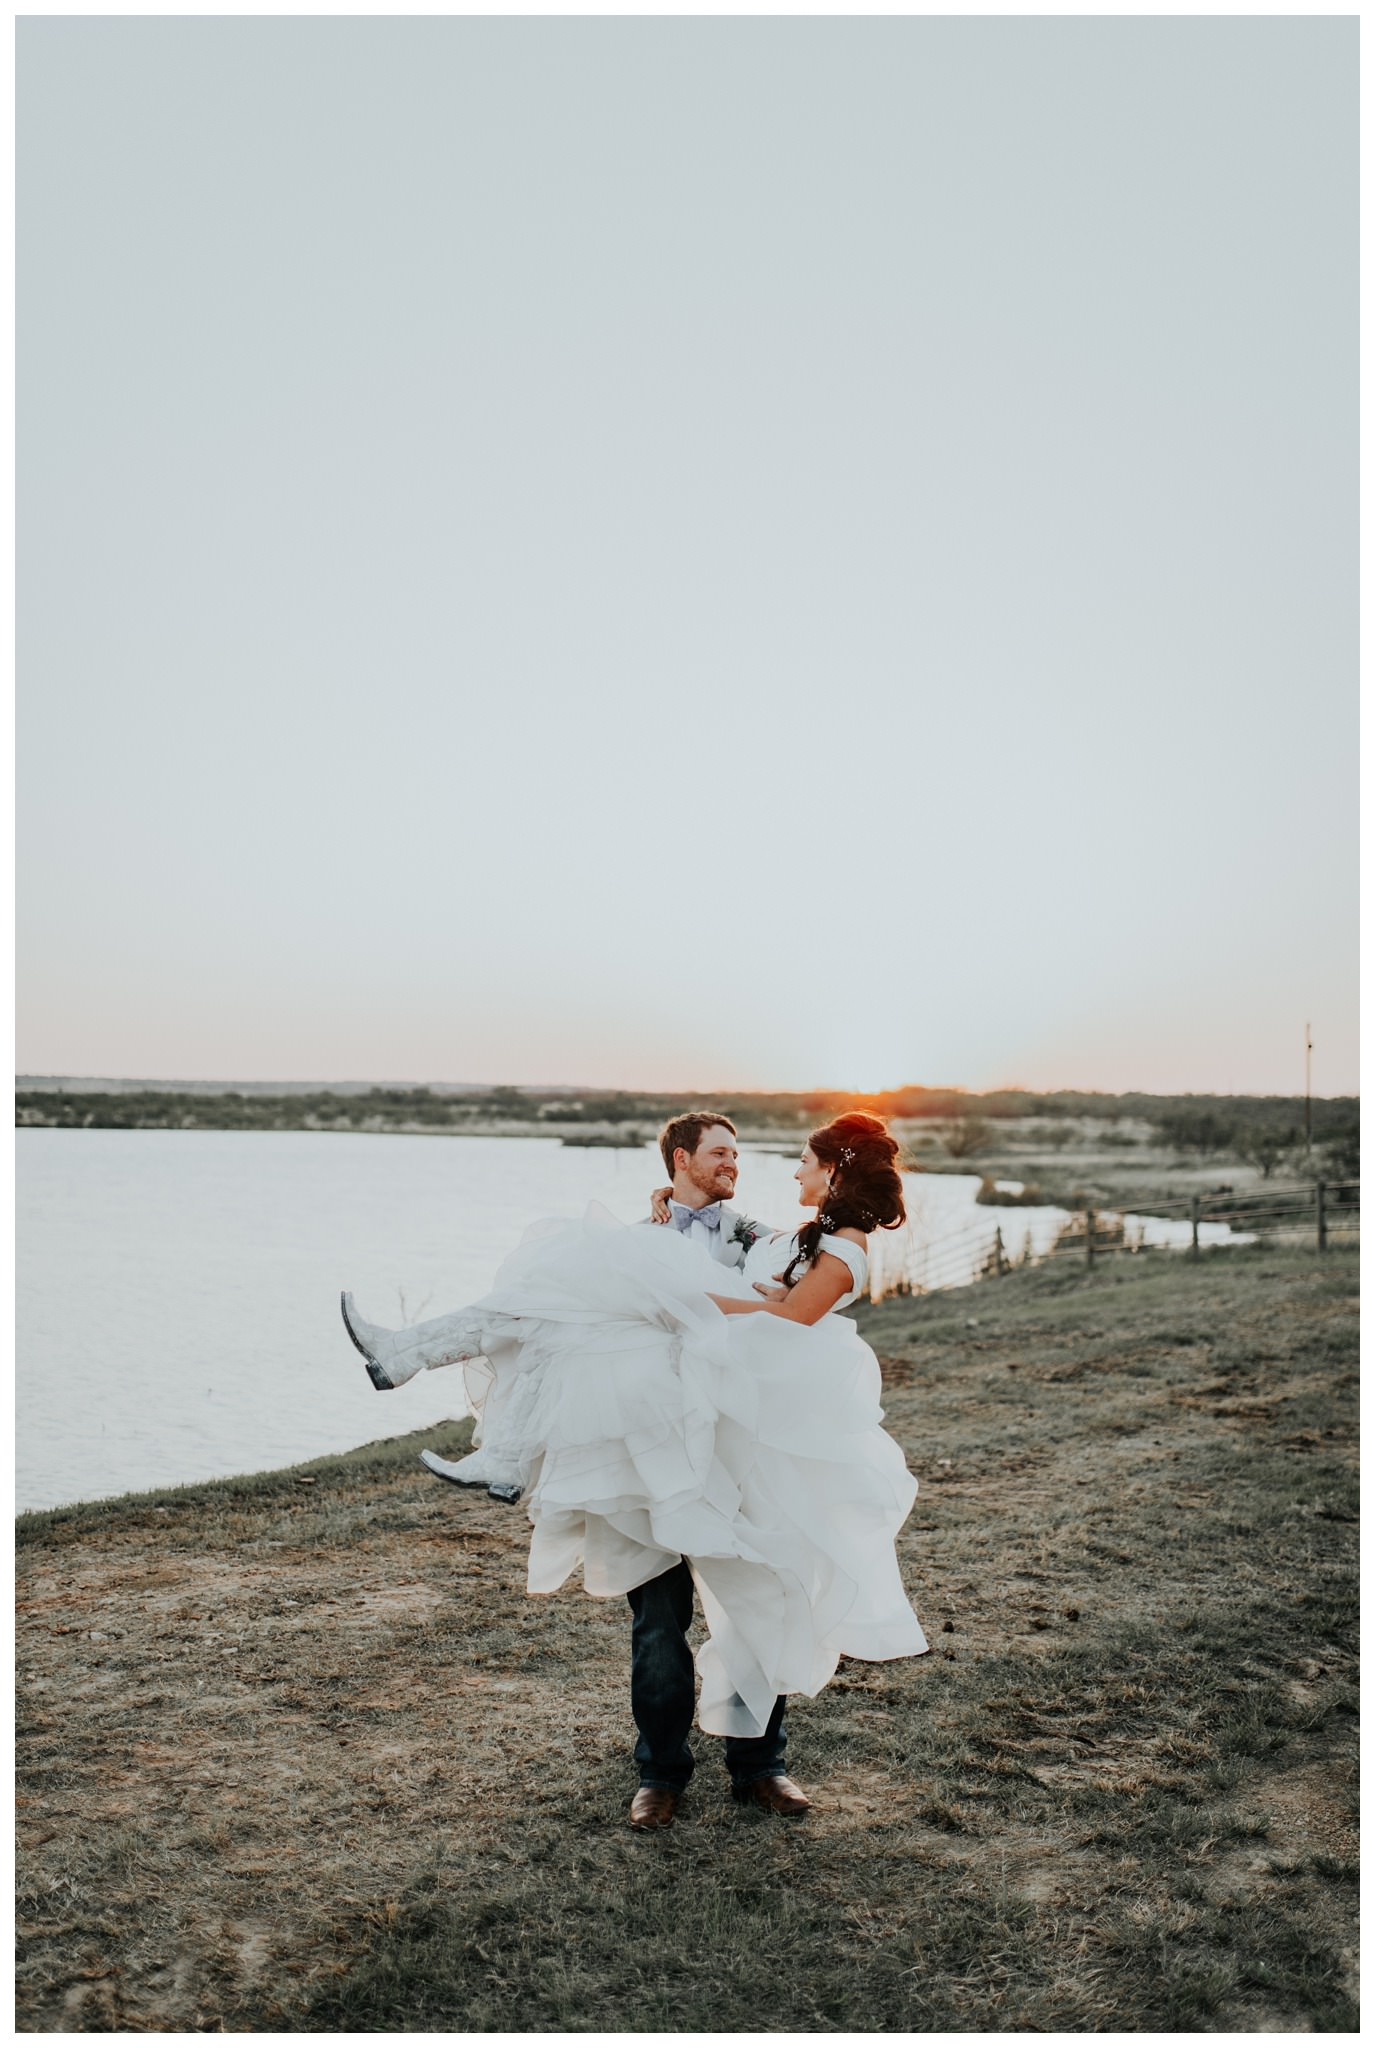 Whimsical Ranch West Texas Wedding - DIY Farm Wedding-9436.jpg